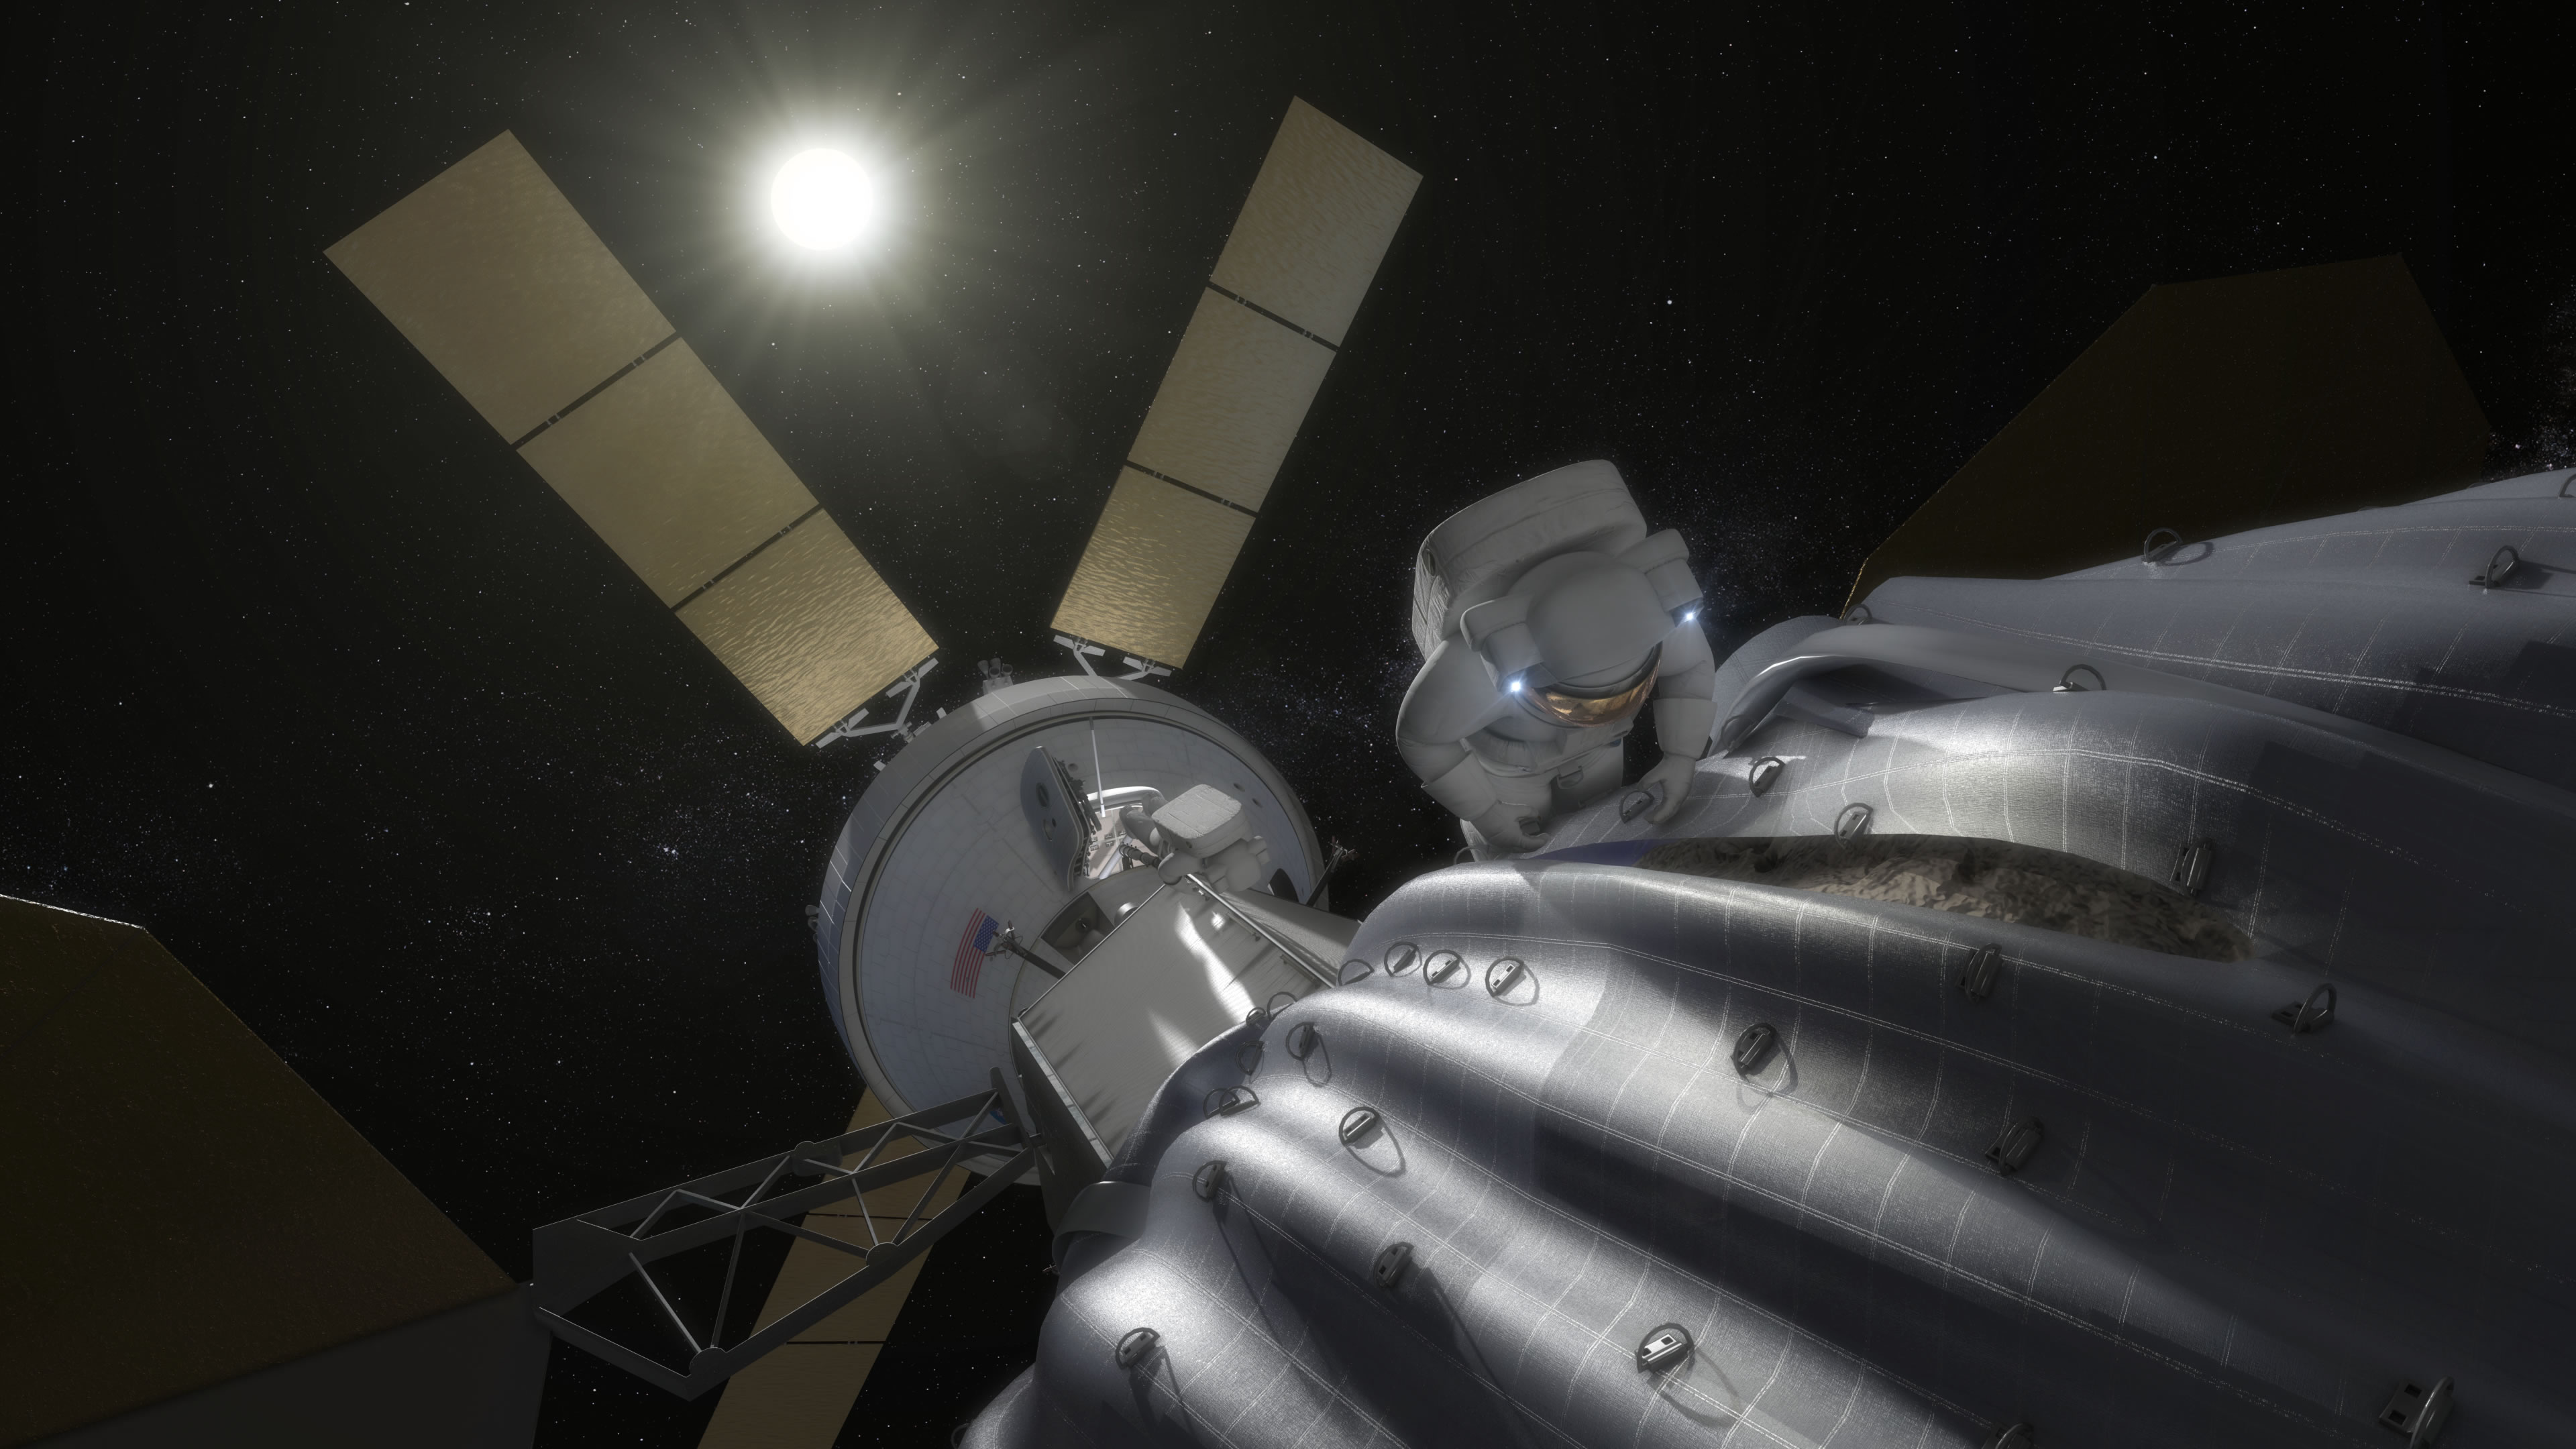 This concept image shows an astronaut preparing to take samples from the captured asteroid after it has been relocated to a stable orbit in the Earth-moon system. Hundreds of rings are affixed to the asteroid capture bag, helping the astronaut carefully navigate the surface. Image Credit: NASA